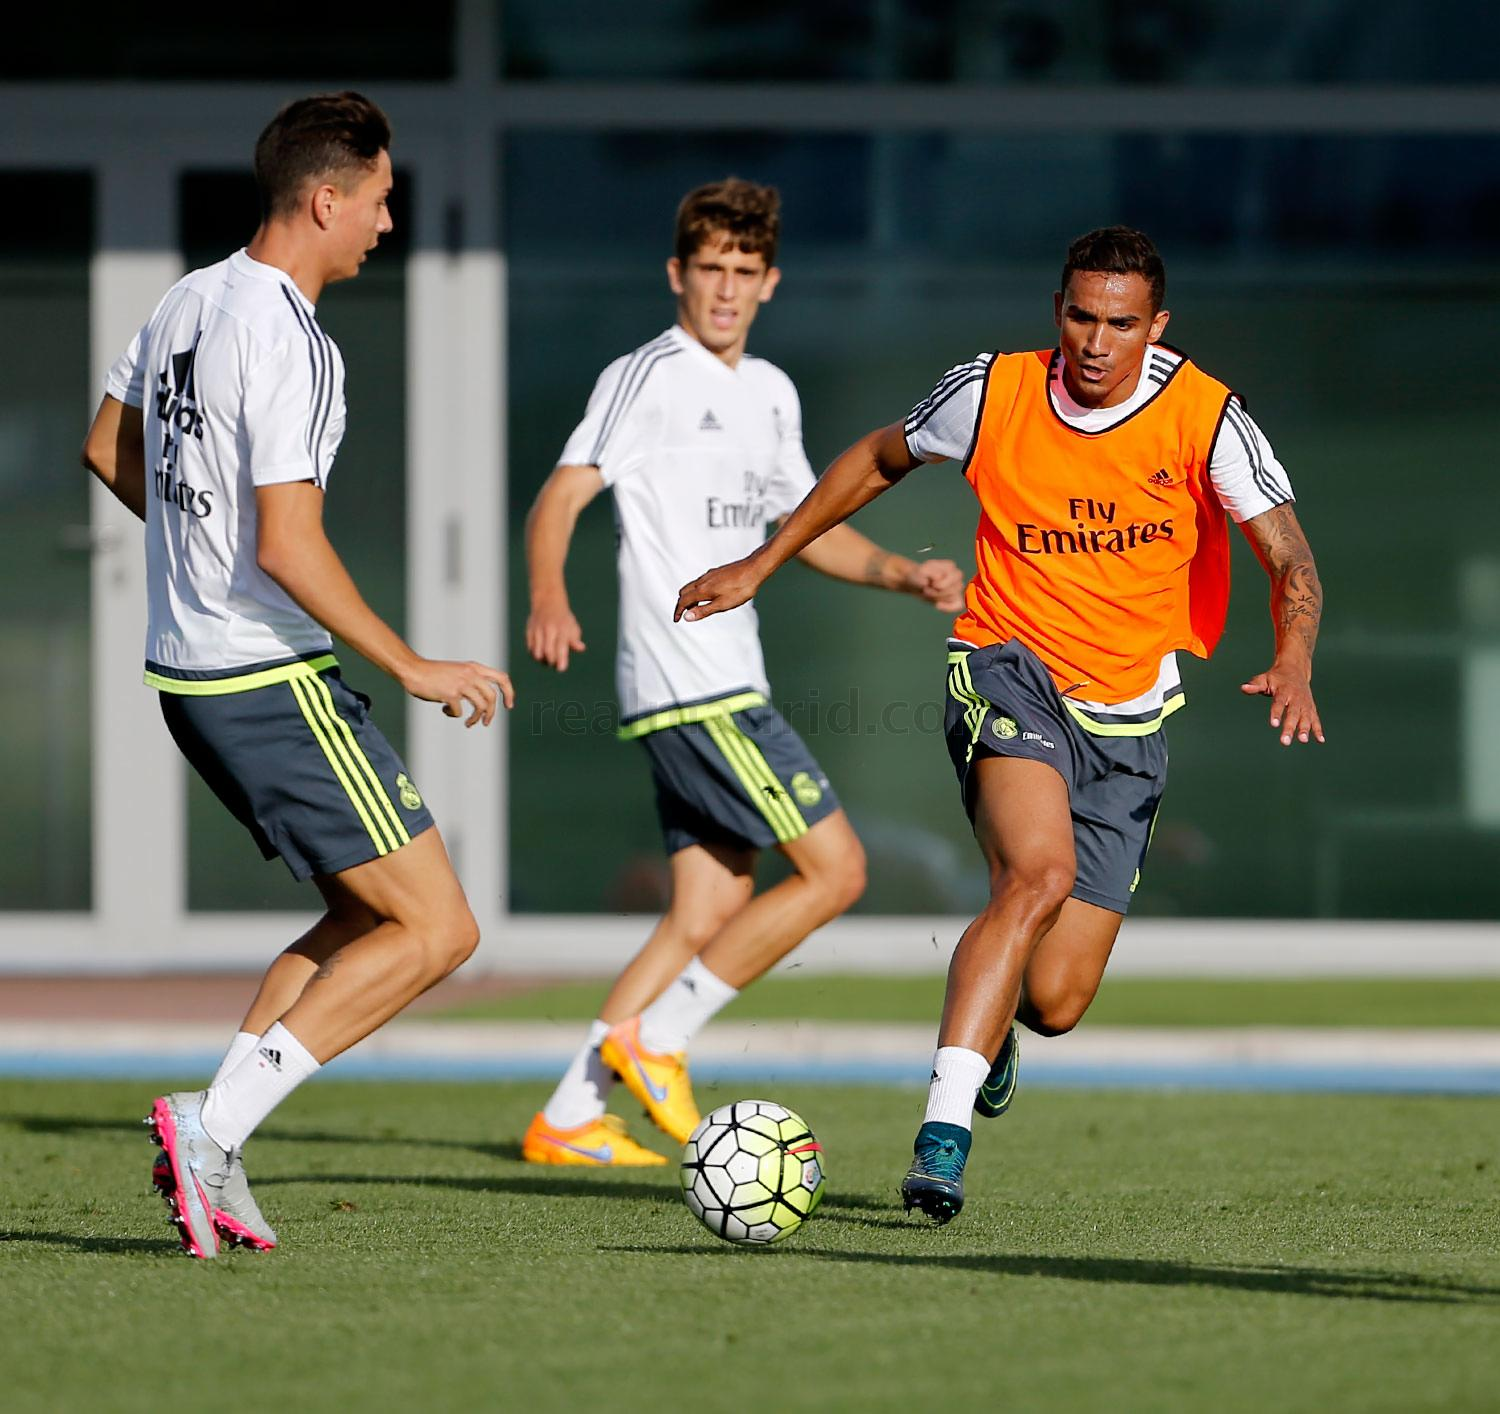 Real Madrid - Entrenamiento del Real Madrid - 12-10-2015